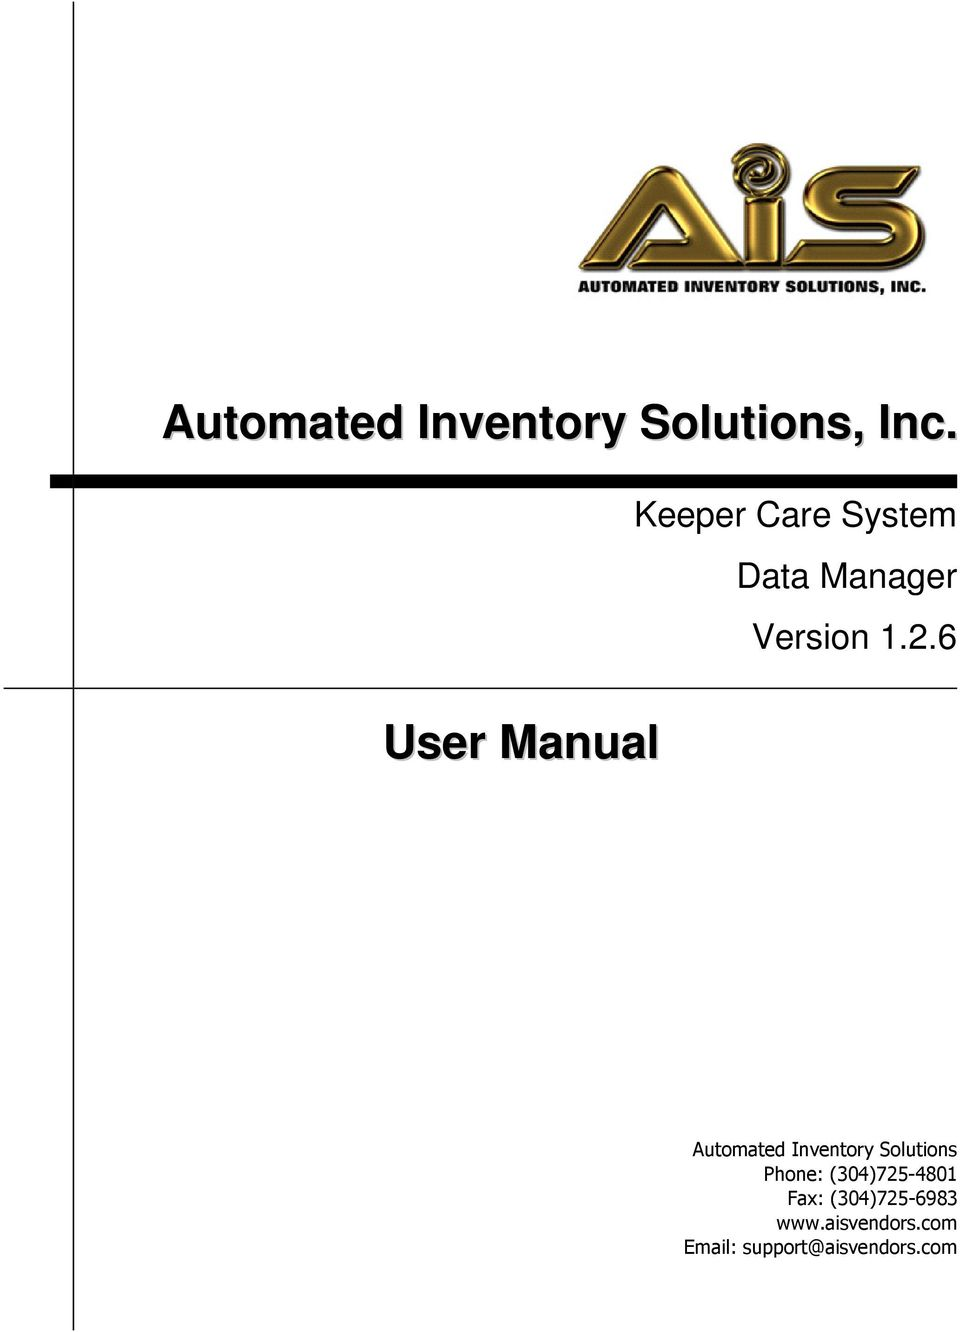 1.2.6 Automated Inventory Solutions Phone: